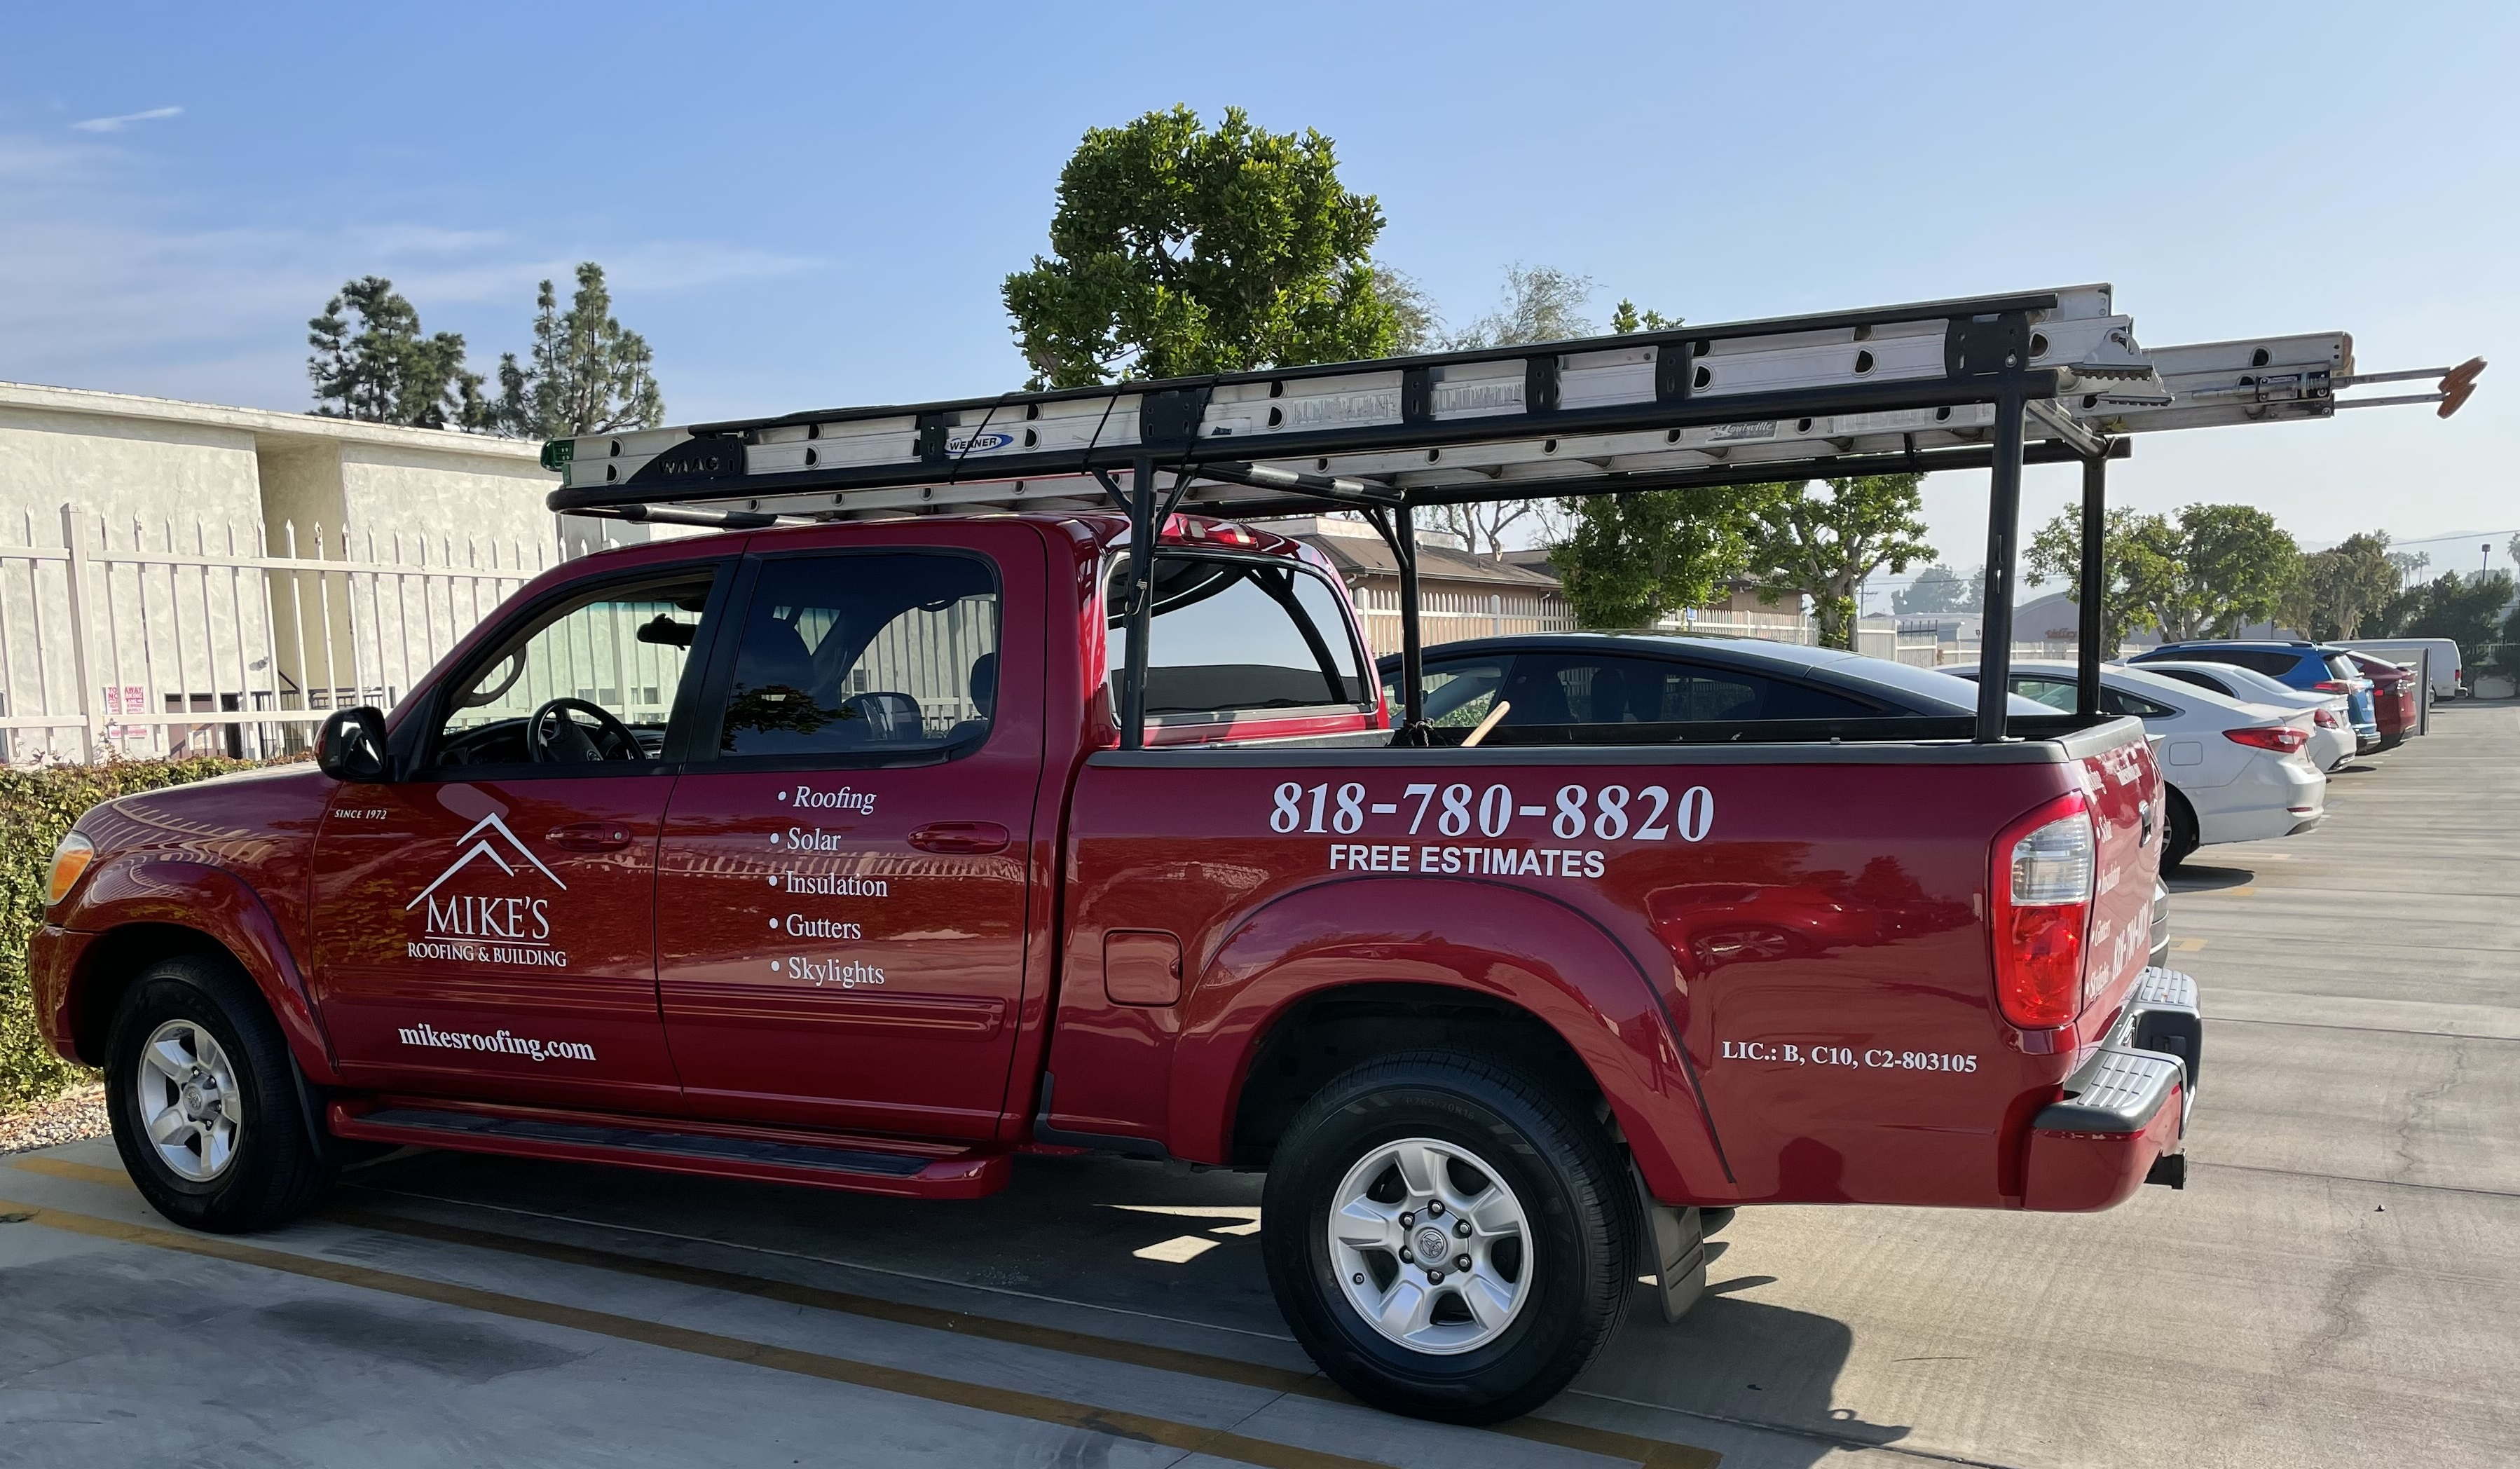 We provided vehicle lettering for Mike's Roofing in Van Nuys. With these service vehicle graphics, they can advertise AND meet customers' needs simultaneously!